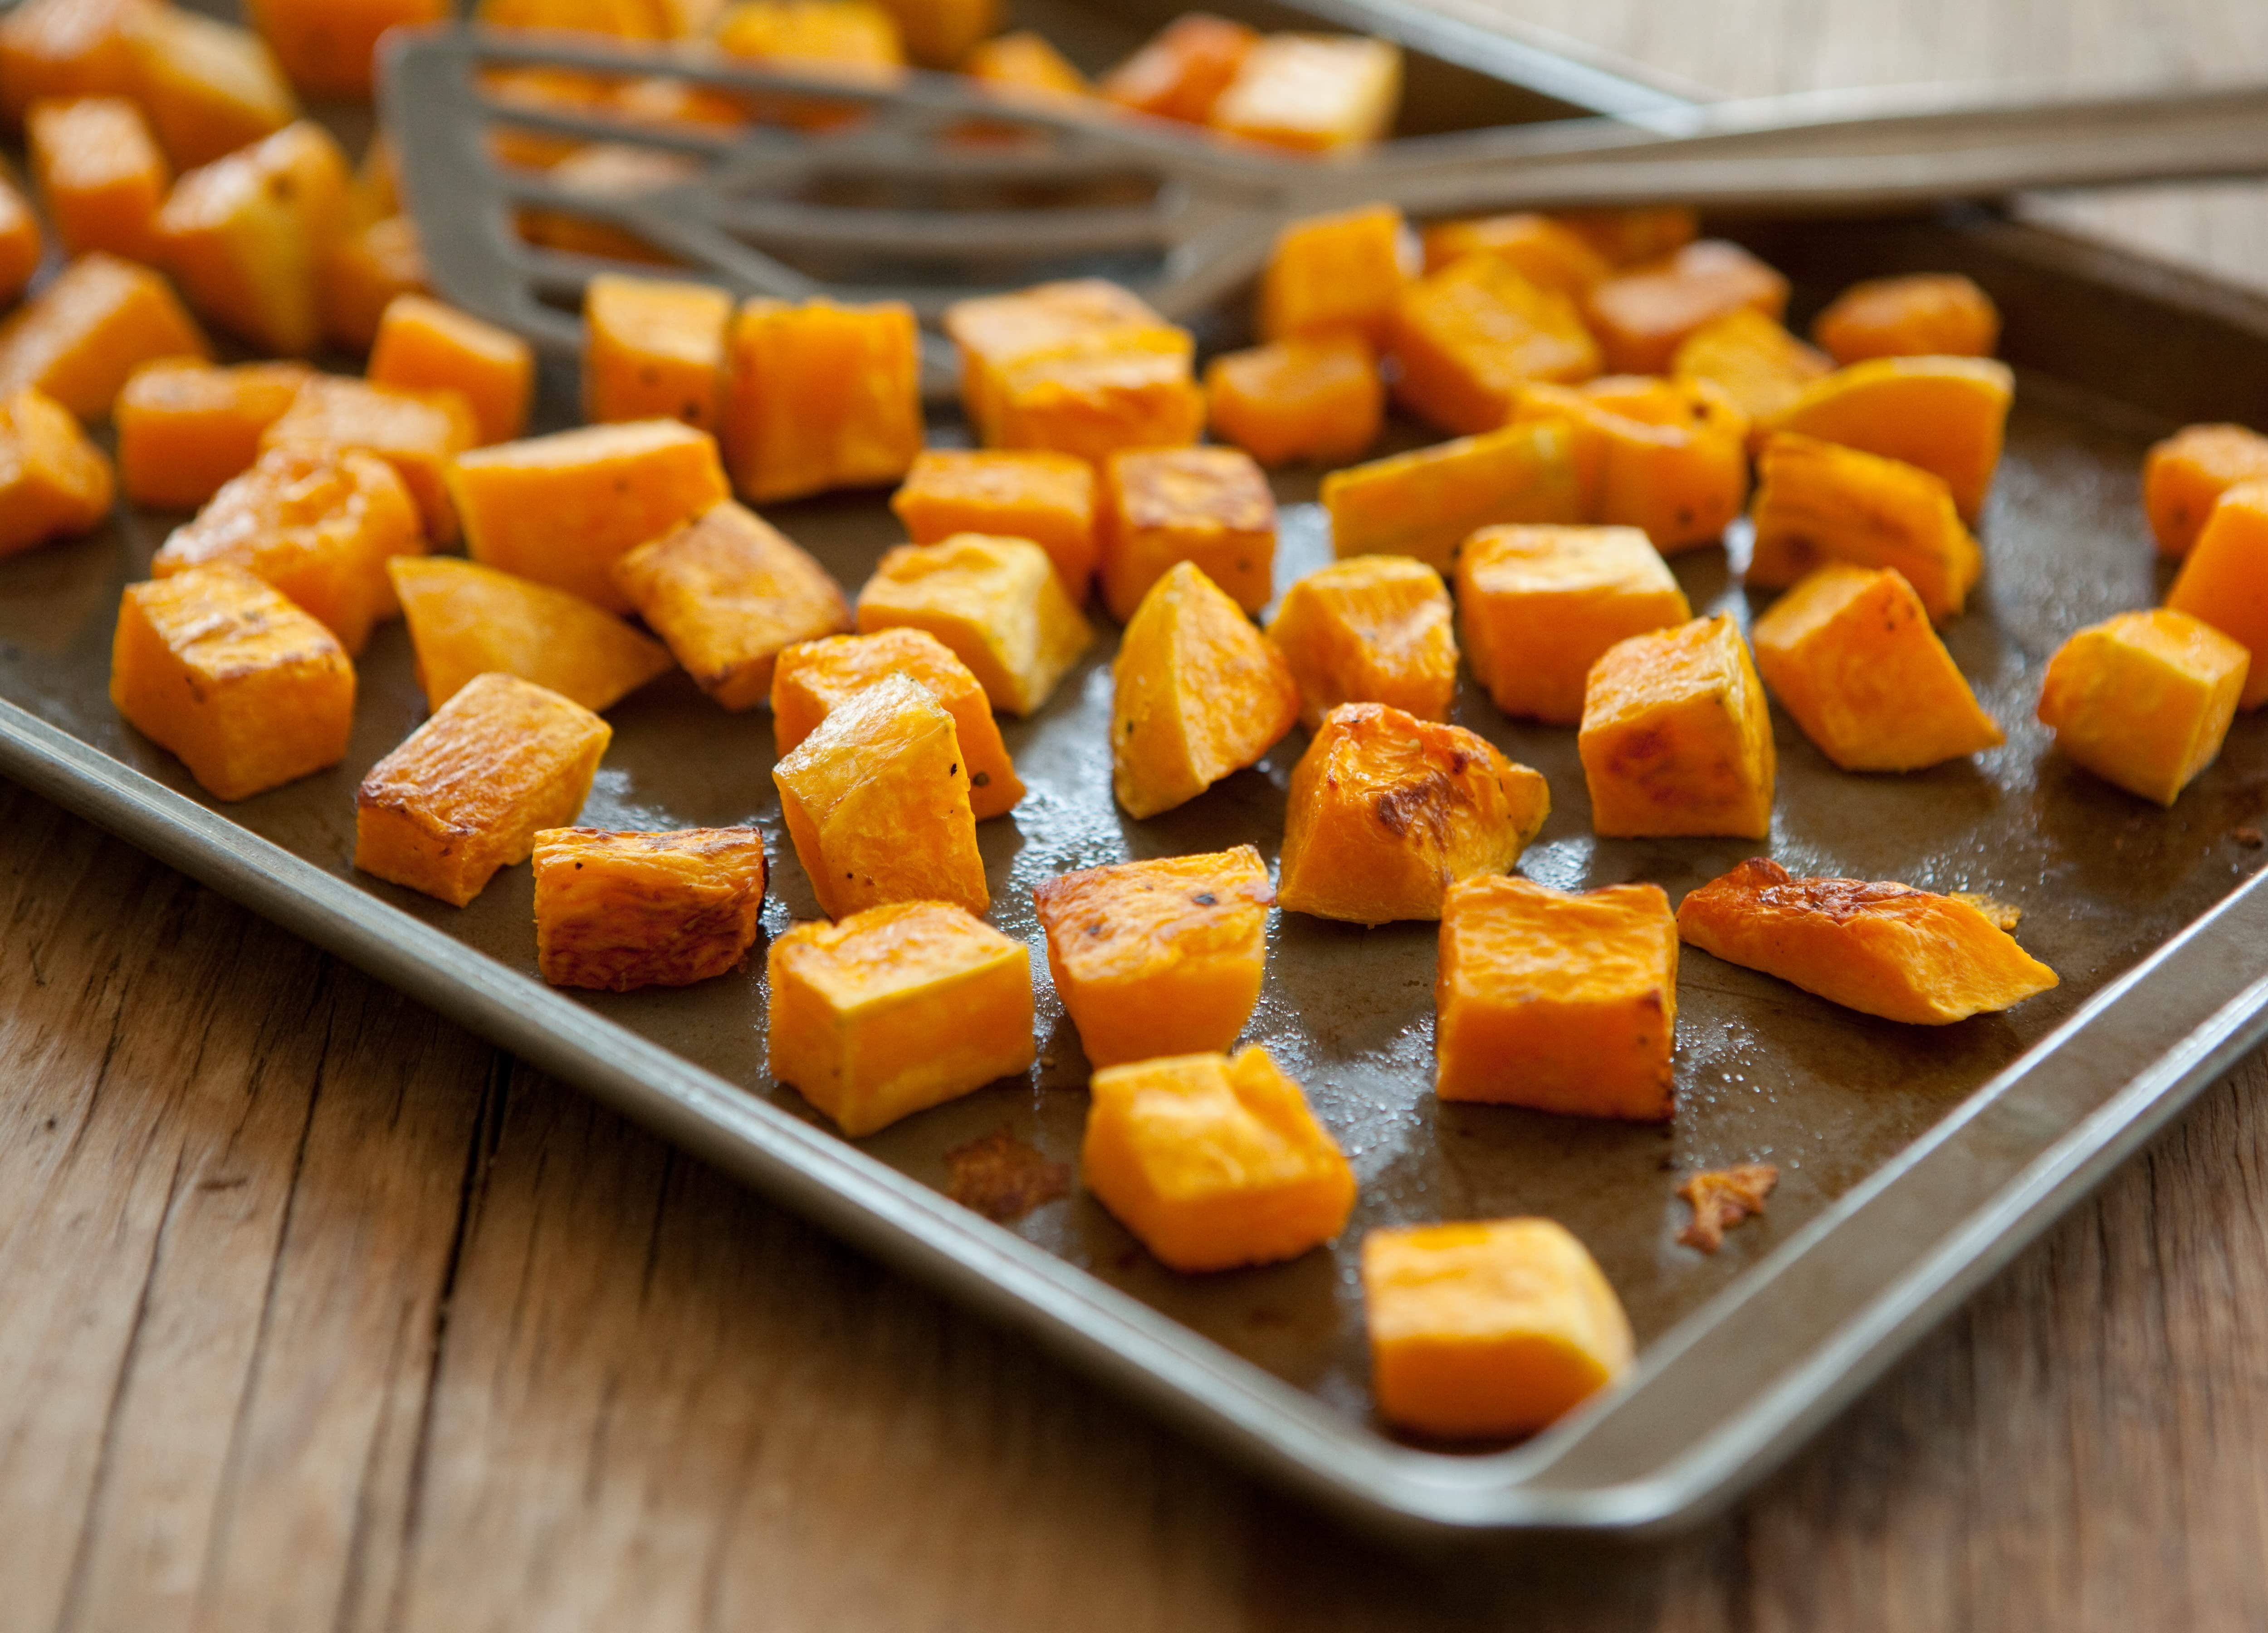 How to Cook: Roasted Butternut Squash